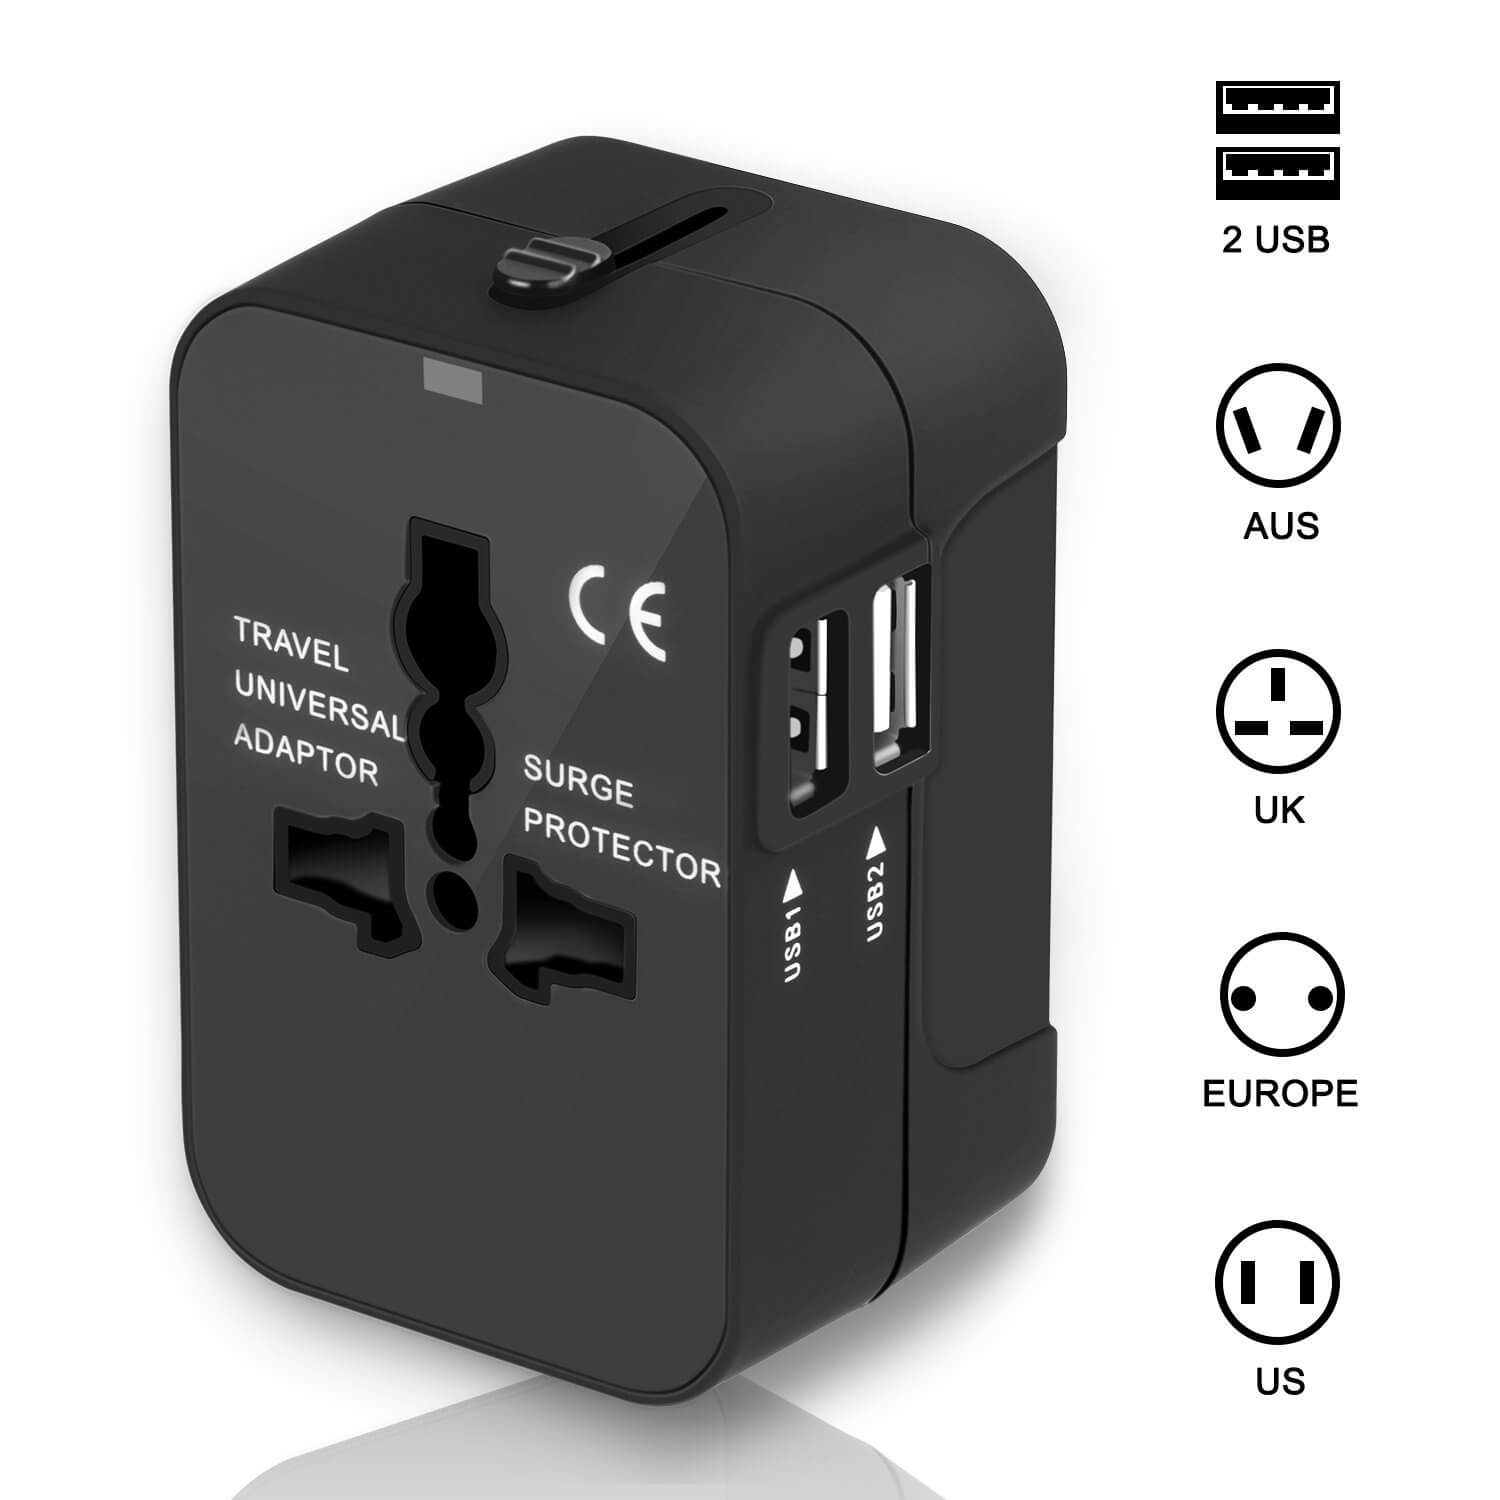 couples_coordinates_travel_electronics_gear_travel_adapter